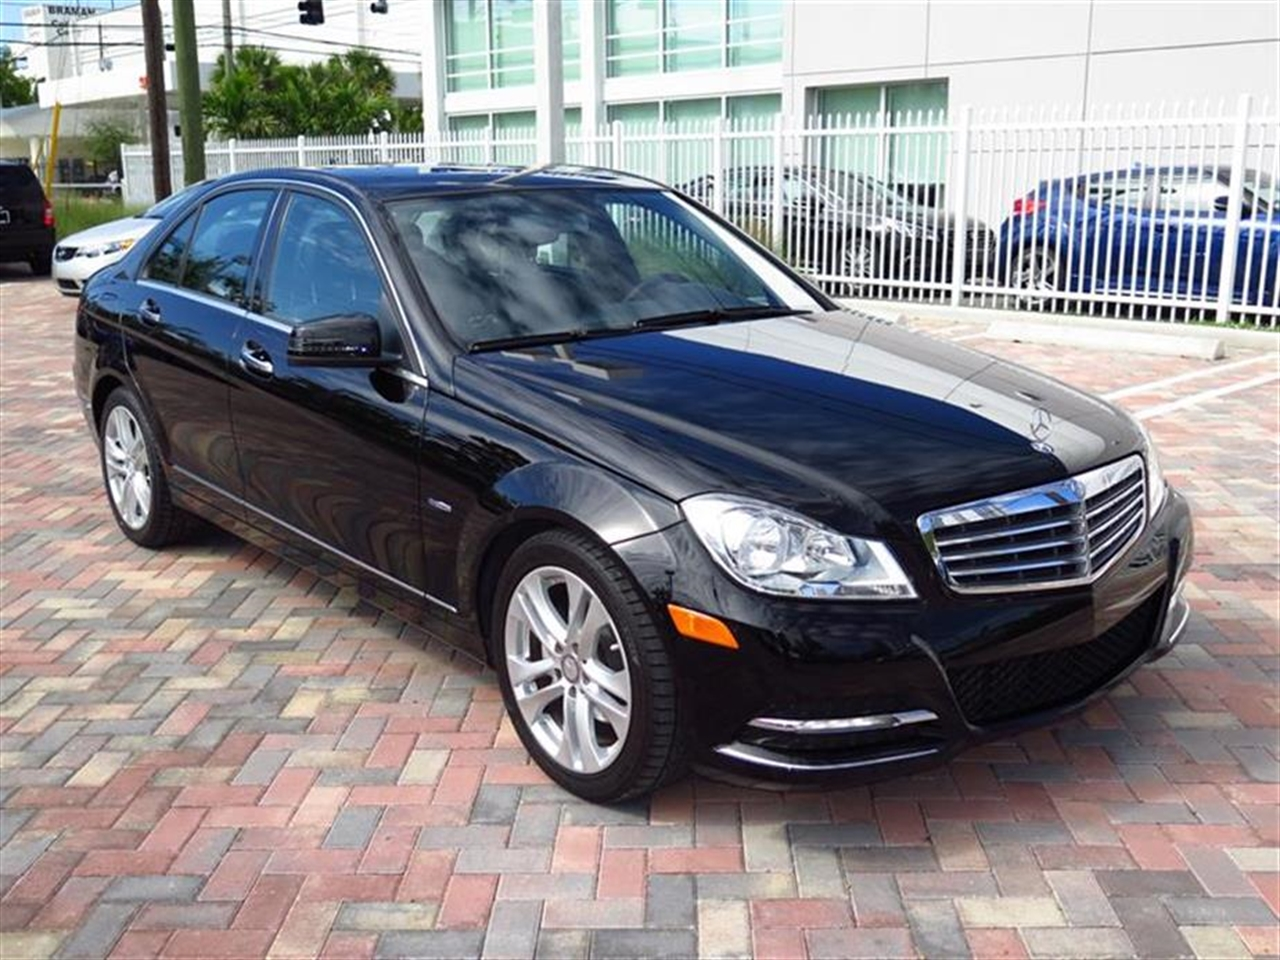 2012 Mercedes C250 4dr Sdn C250 Sport RWD 63967 miles 58 central controller display wretractabl